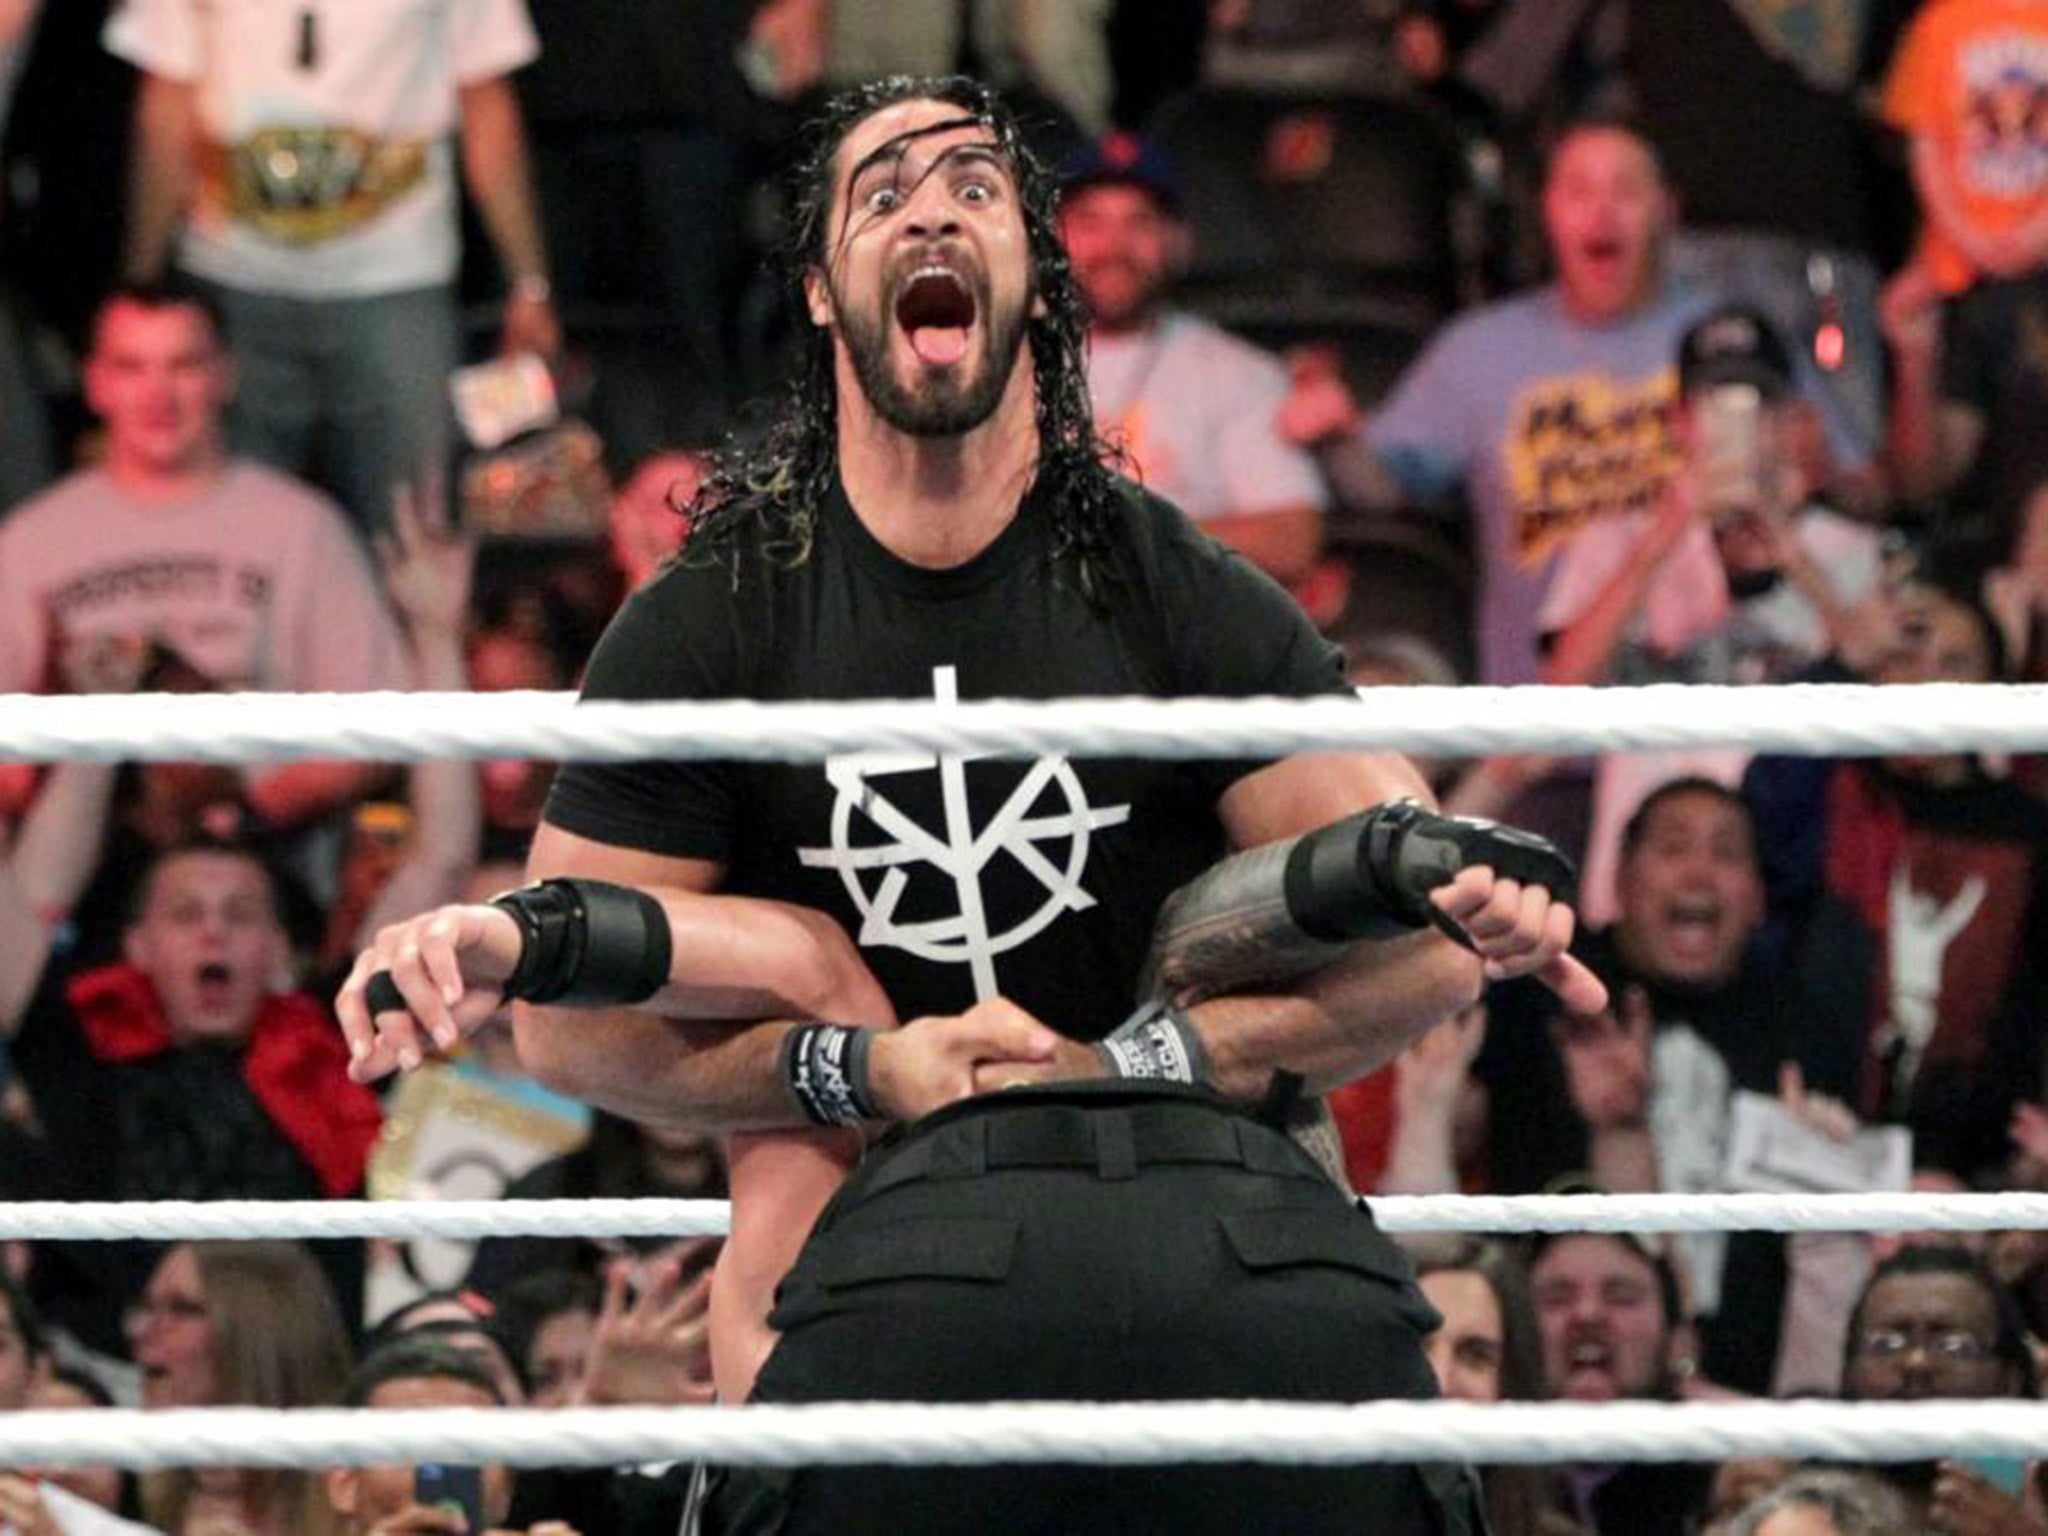 Wwe extreme rules results 2016 seth rollins returns to pedigree roman reigns after he defeats aj styles the independent